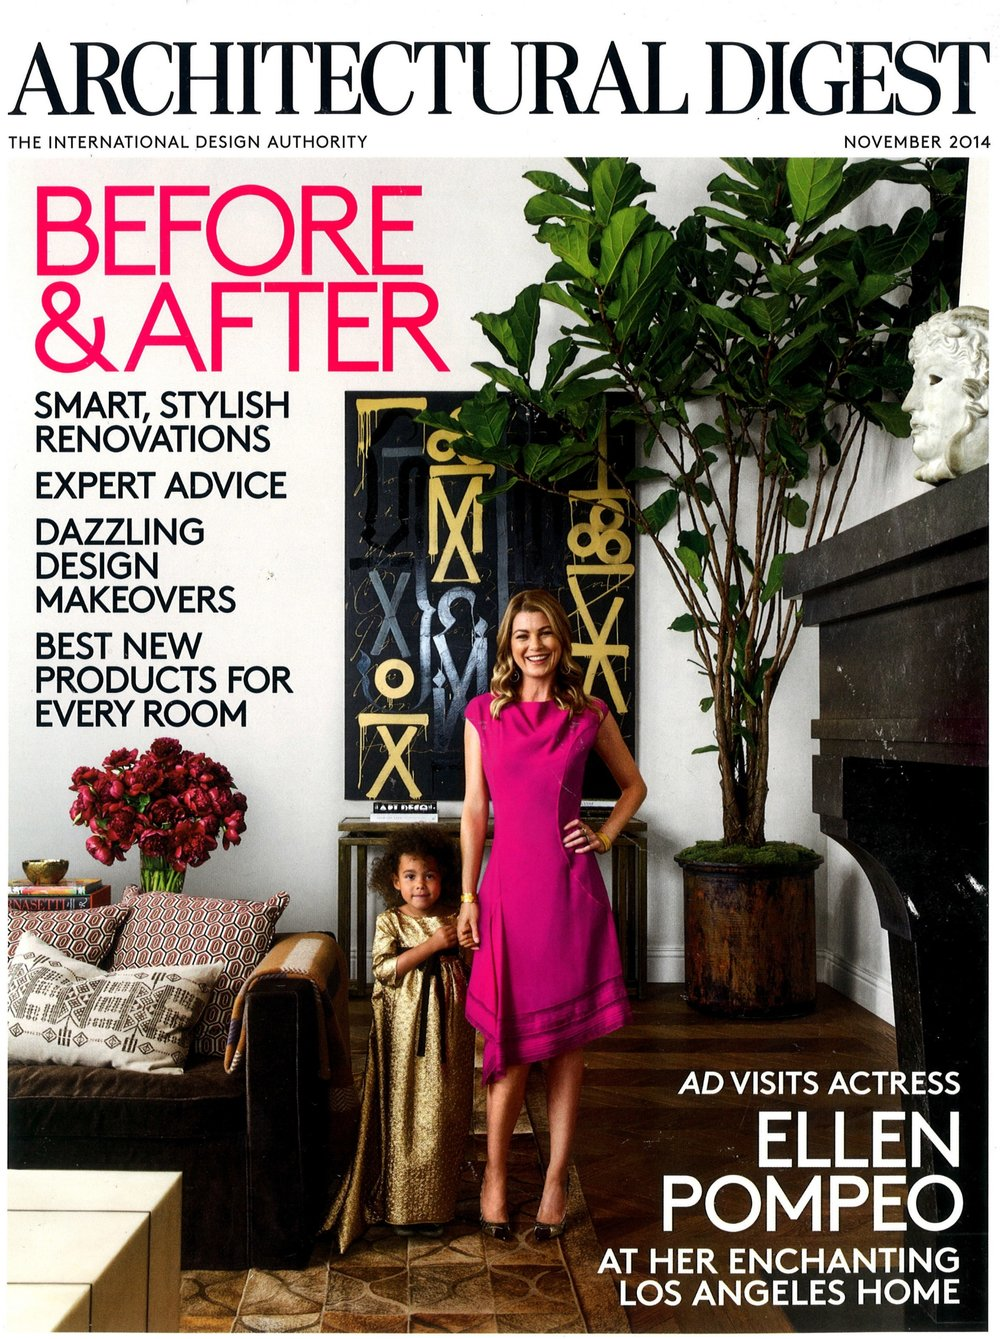 Architectural Digest Cover-Page 1.jpg